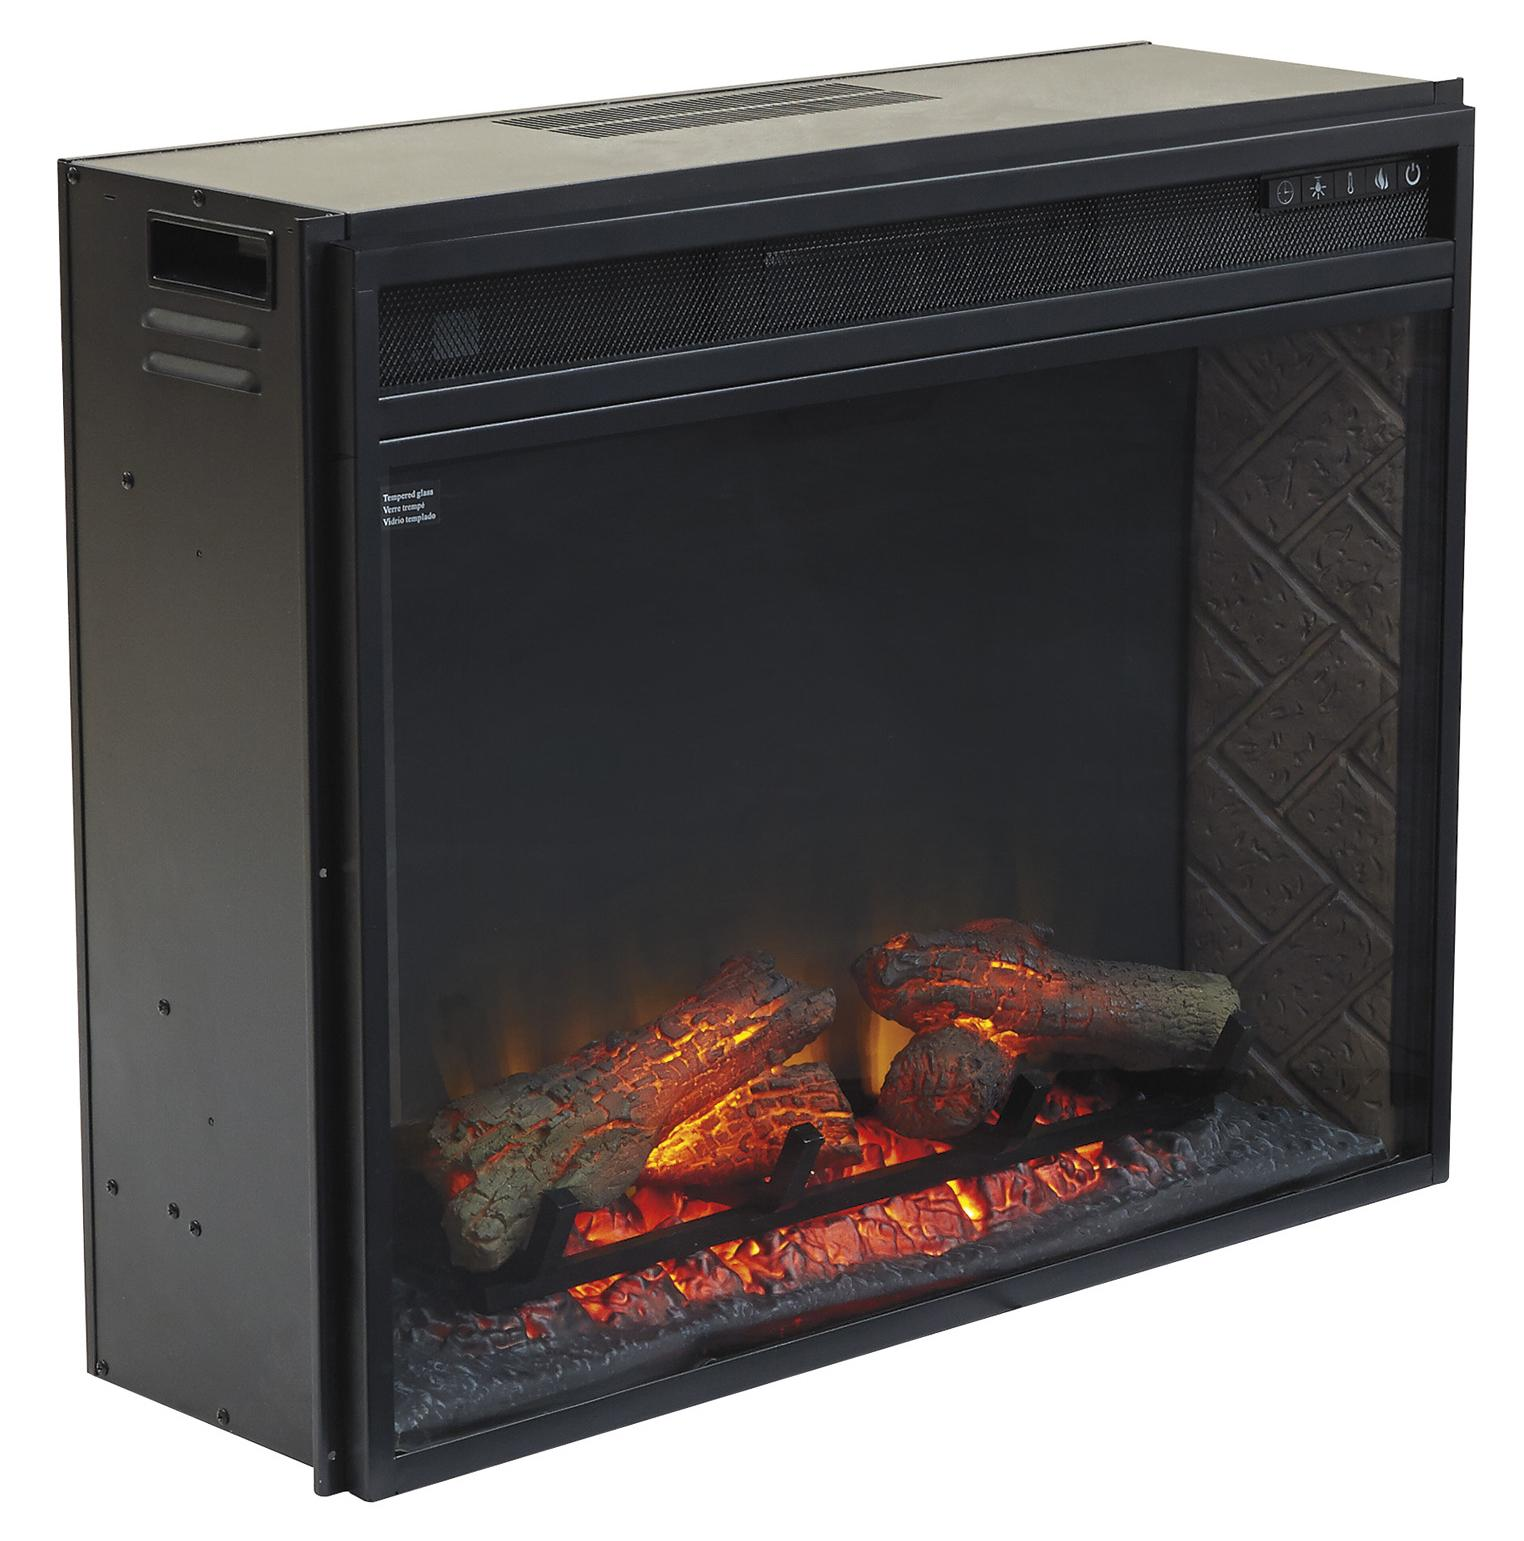 Signature Design by Ashley Entertainment Accessories Large Fireplace Insert Infrared - Item Number: W100-21